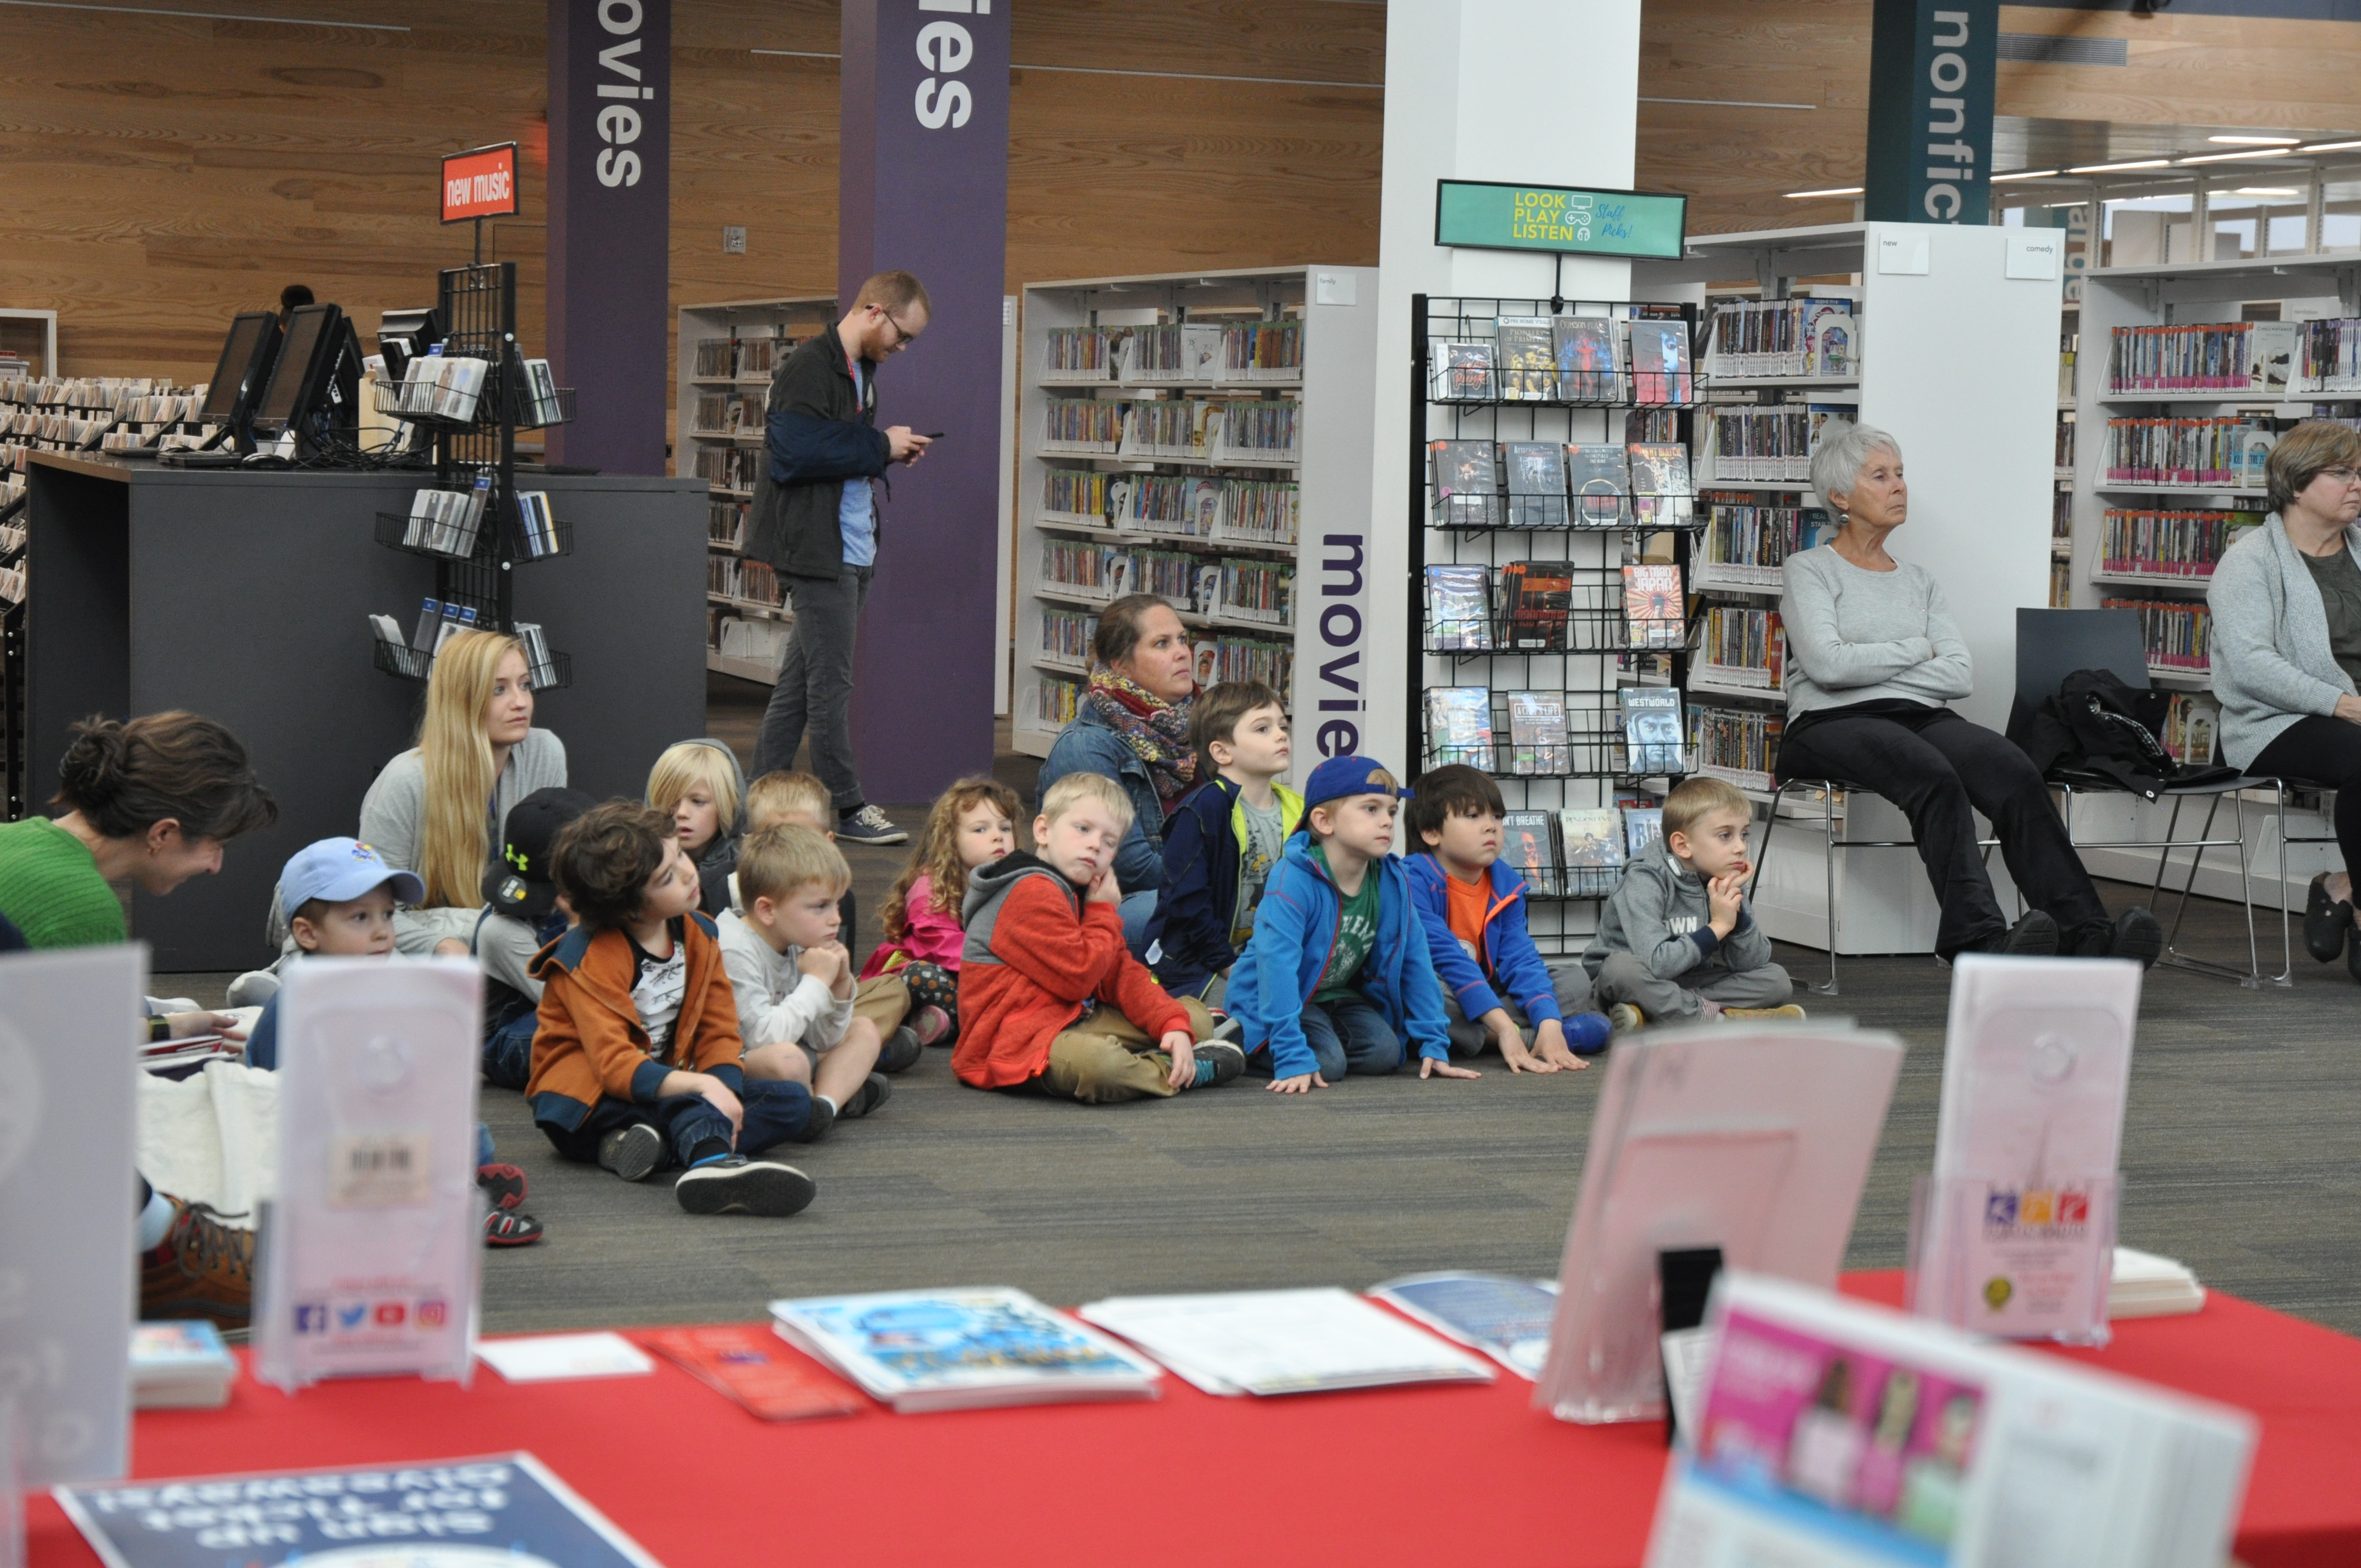 Library patrons were free to watch the live performances throughout the day, including this group of preschoolers.